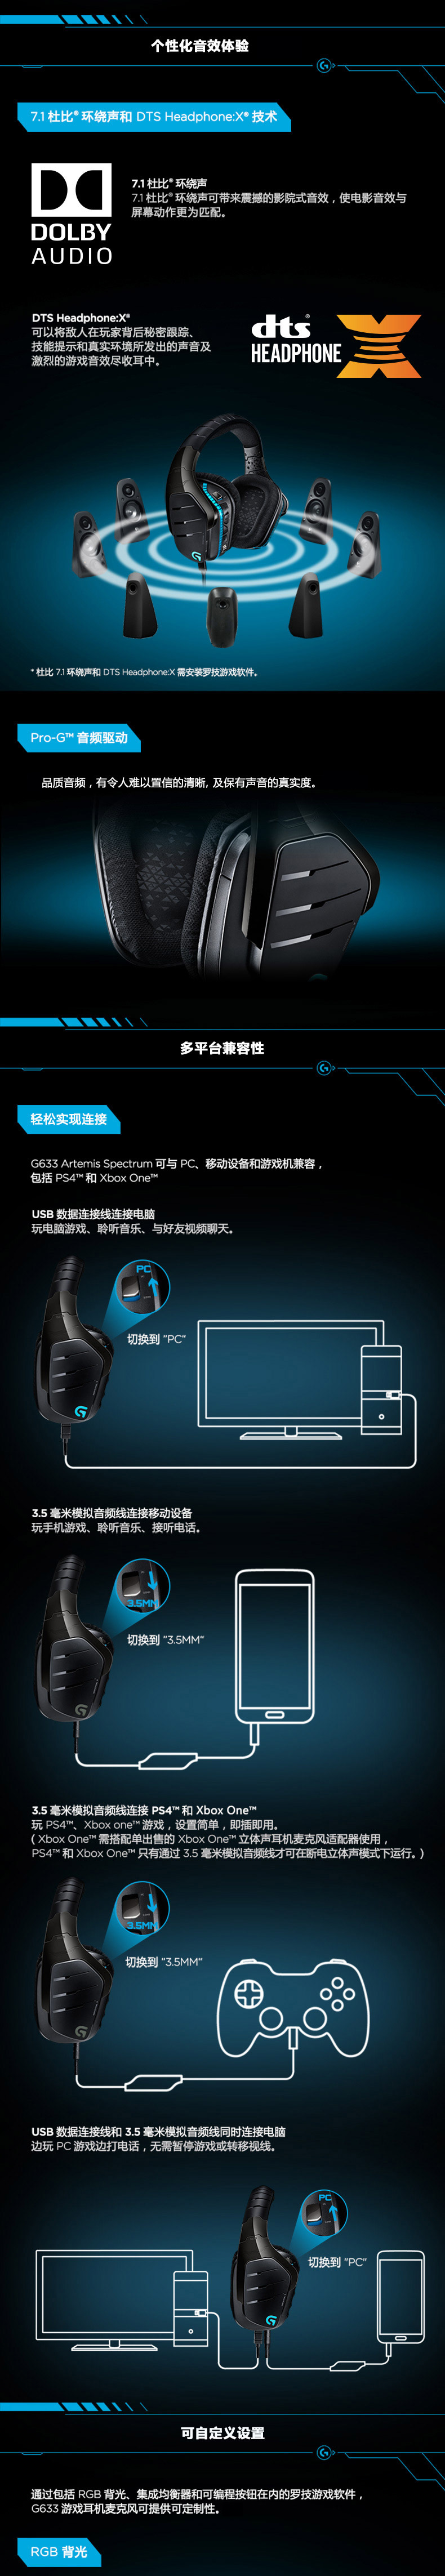 103 78 Logitech Logitech G633 Game Earphone Competition Cable Head Wearing 7 1 Dubil Ear Eating Chicken G633s From Best Taobao Agent Taobao International International Ecommerce Newbecca Com